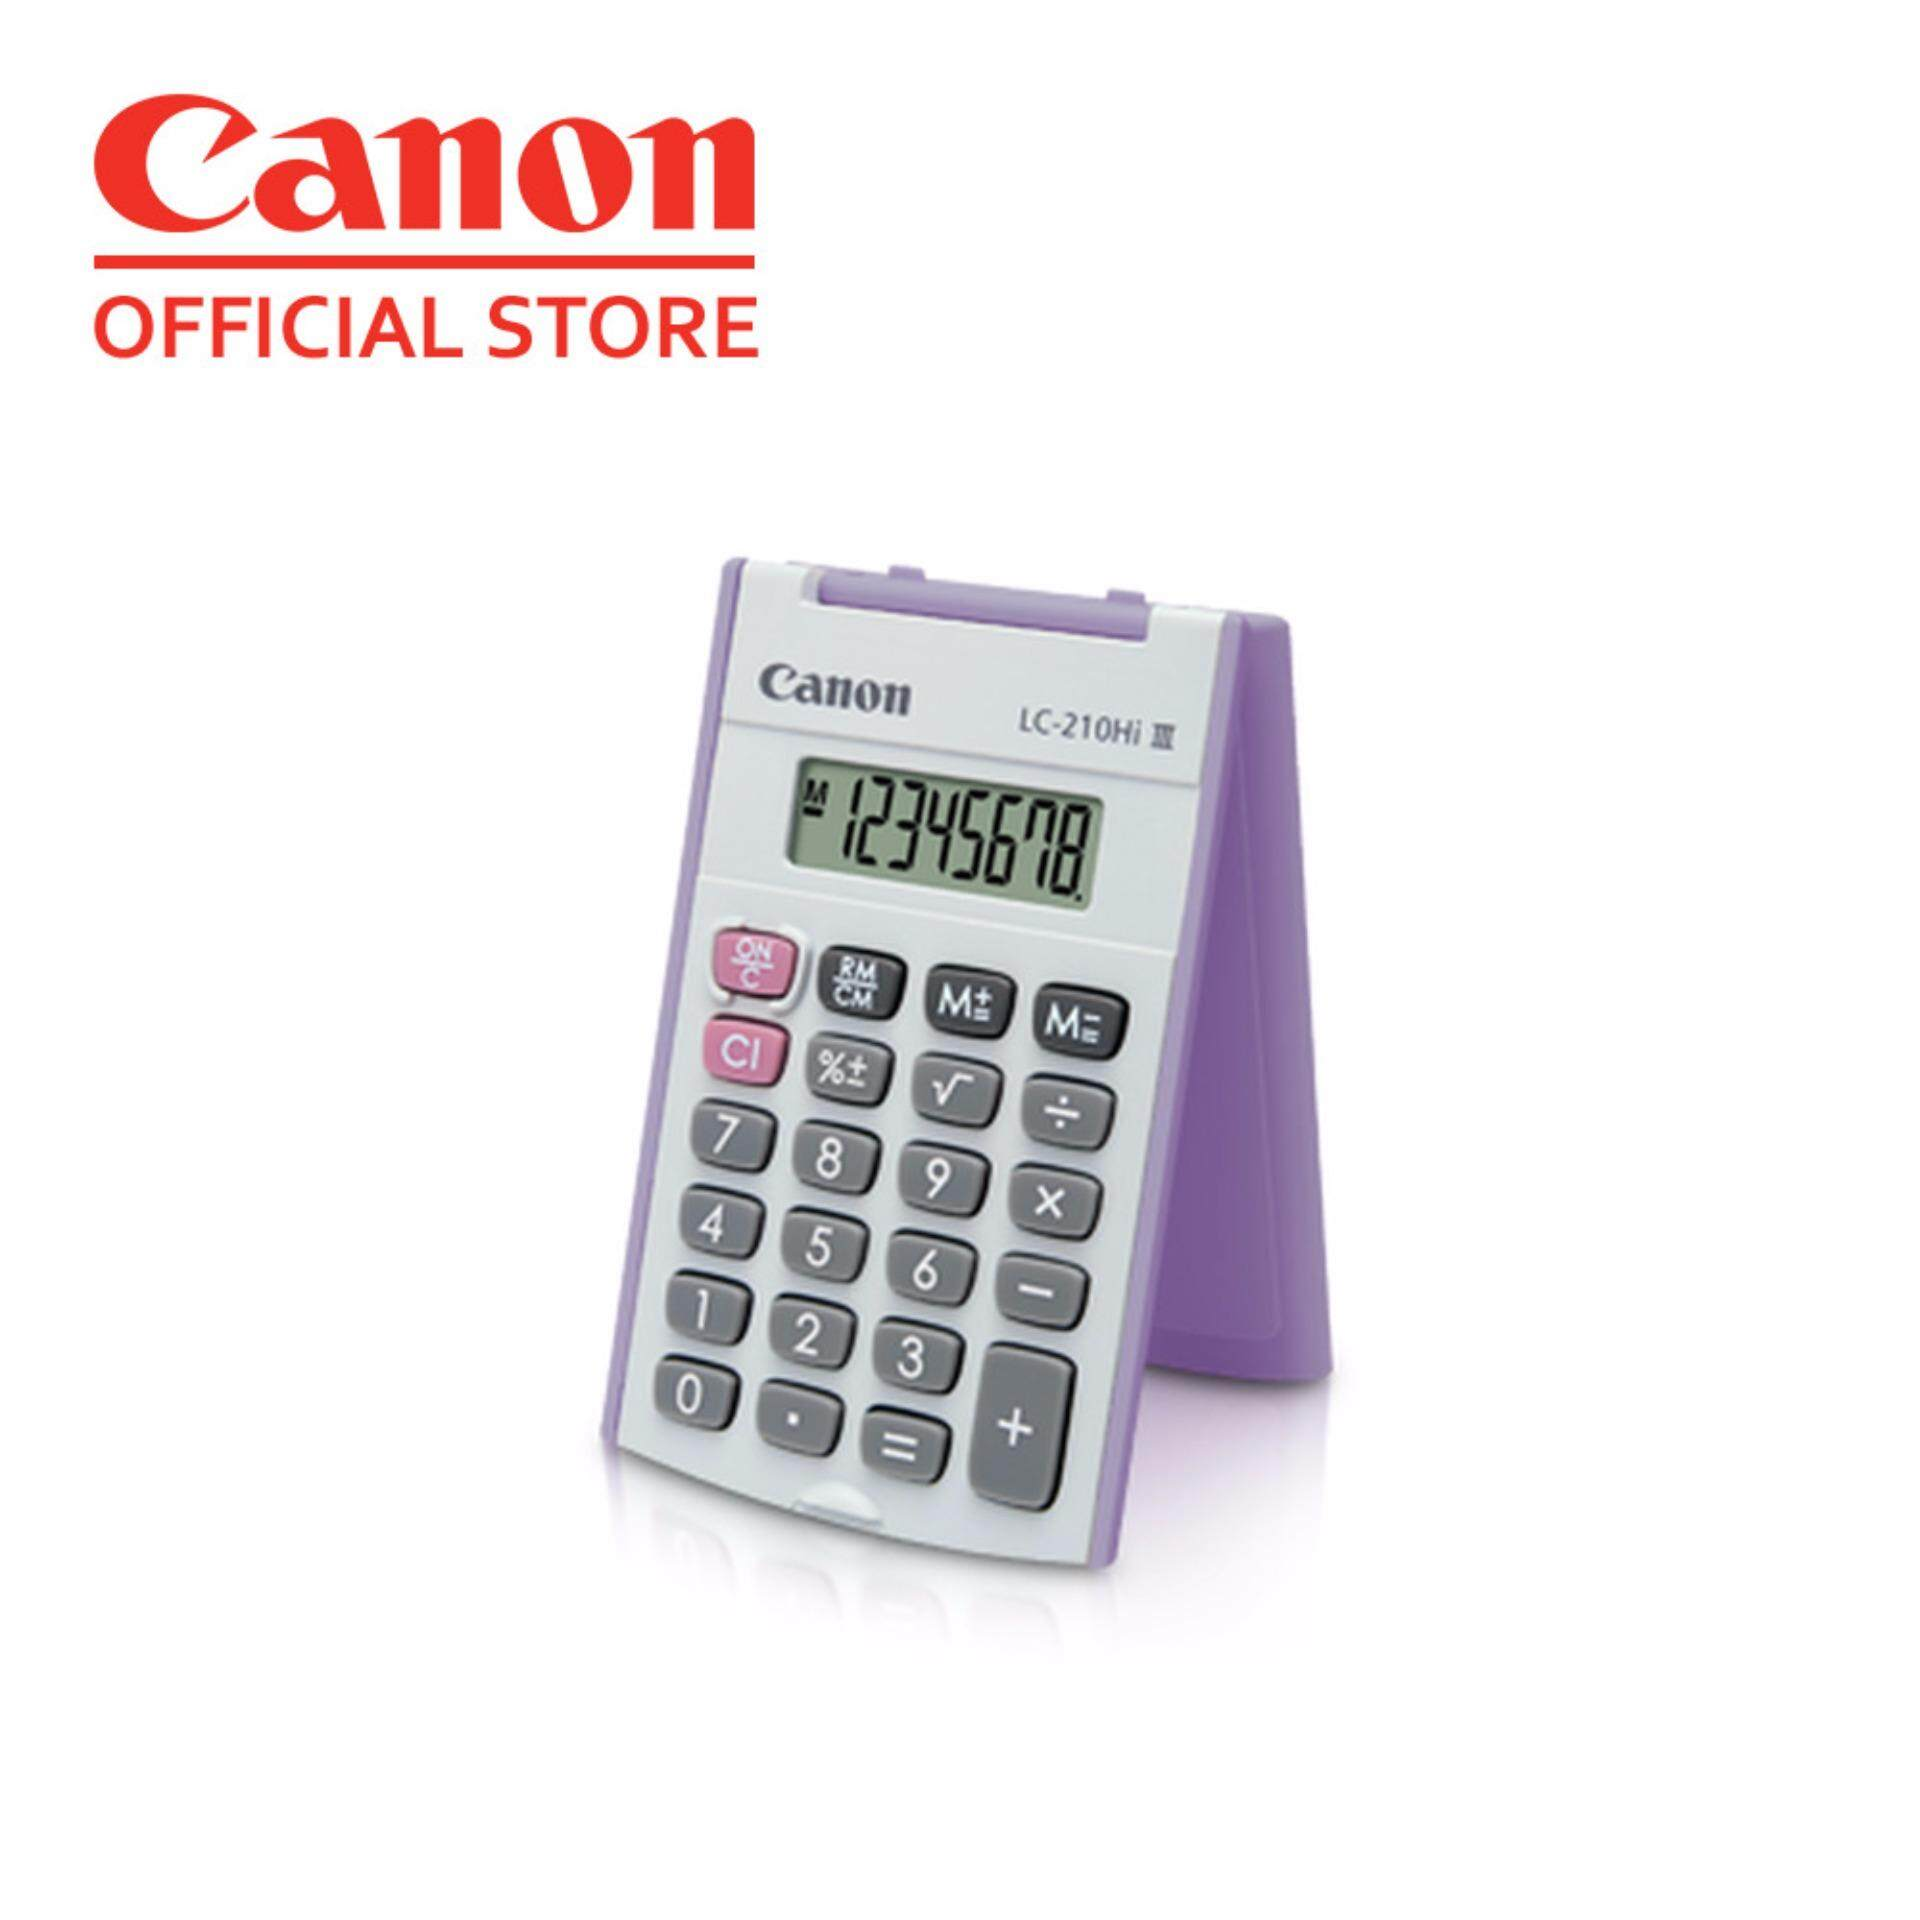 Canon LC-210Hi III Handheld 8 Digits Calculator - Purple Malaysia